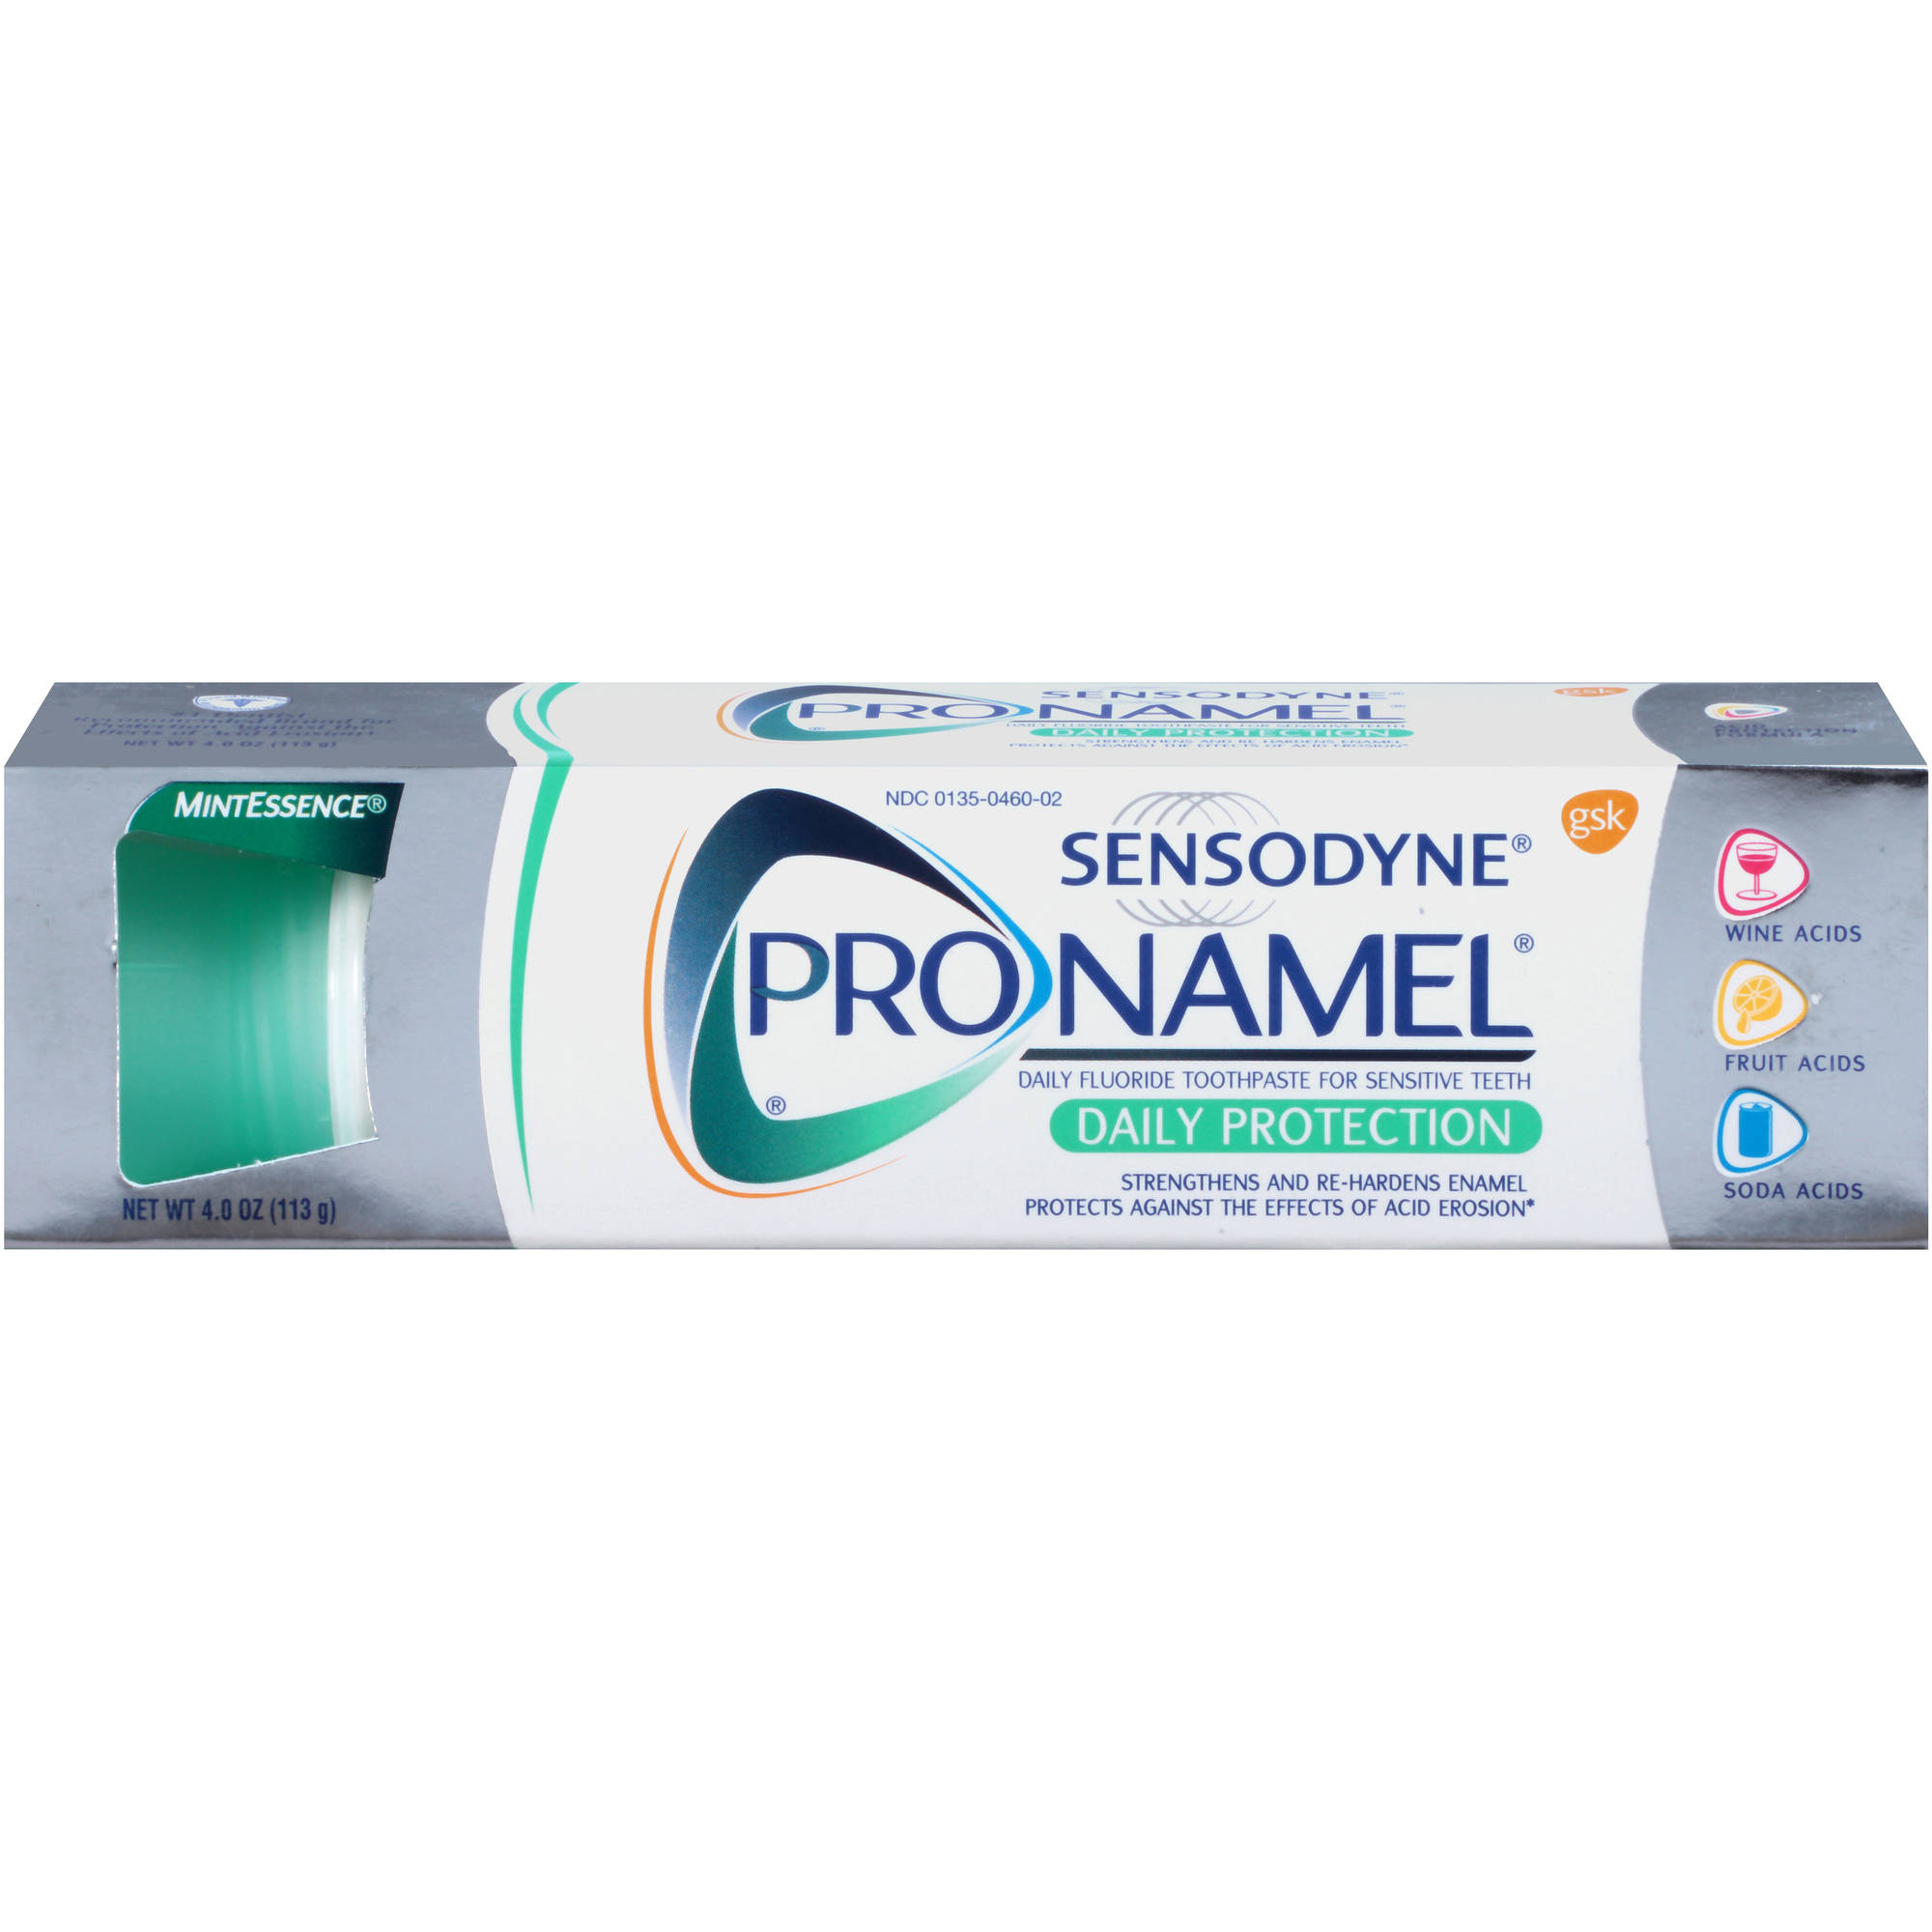 Sensodyne Pronamel Mint Essence Toothpaste, 4 oz